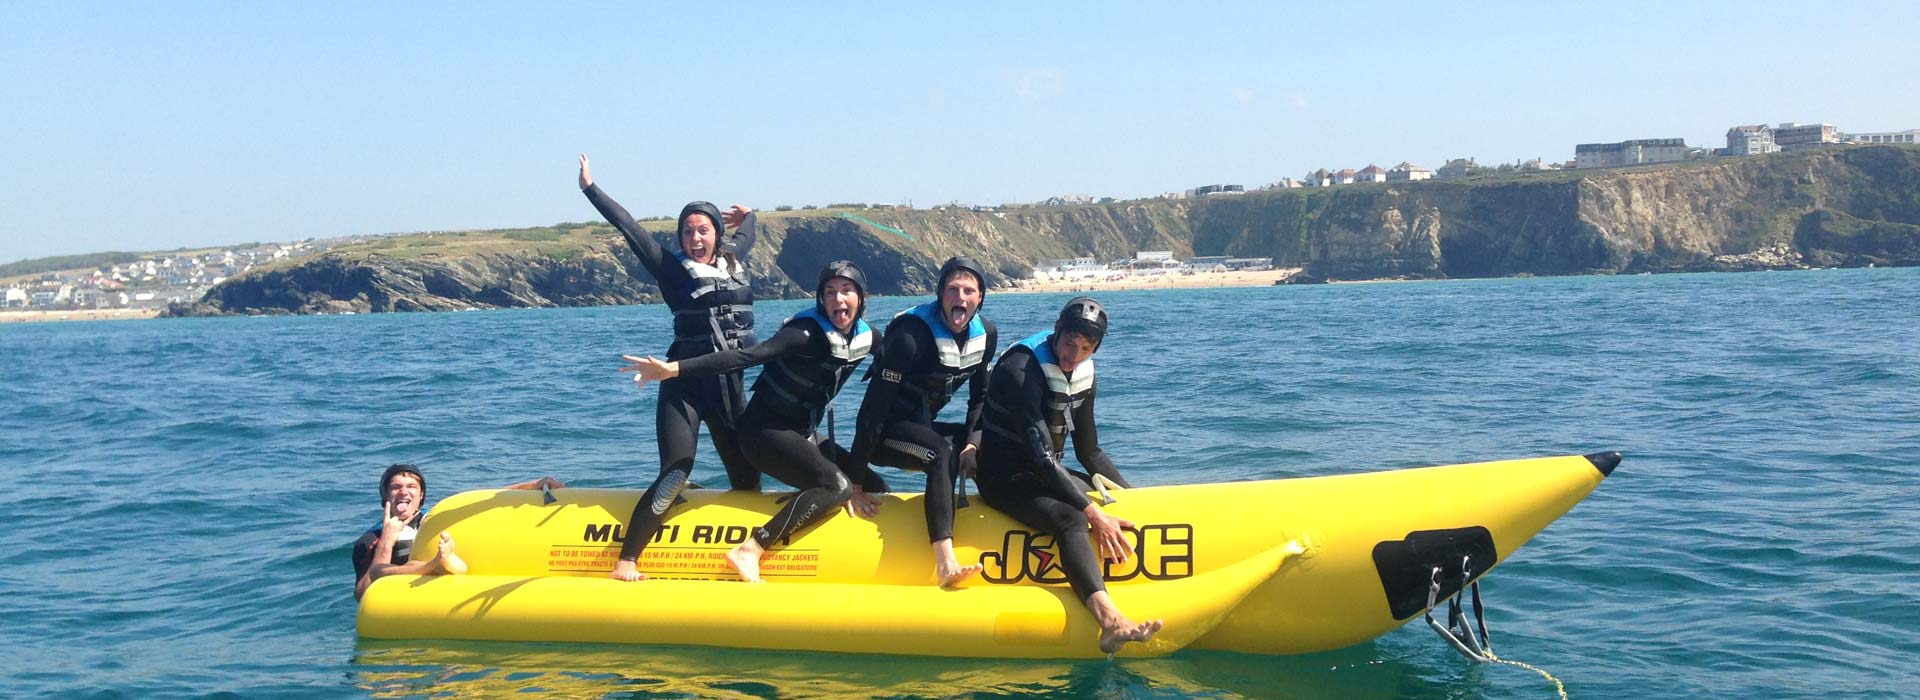 Banana Boat Rides Newquay Cornwall family fun activity